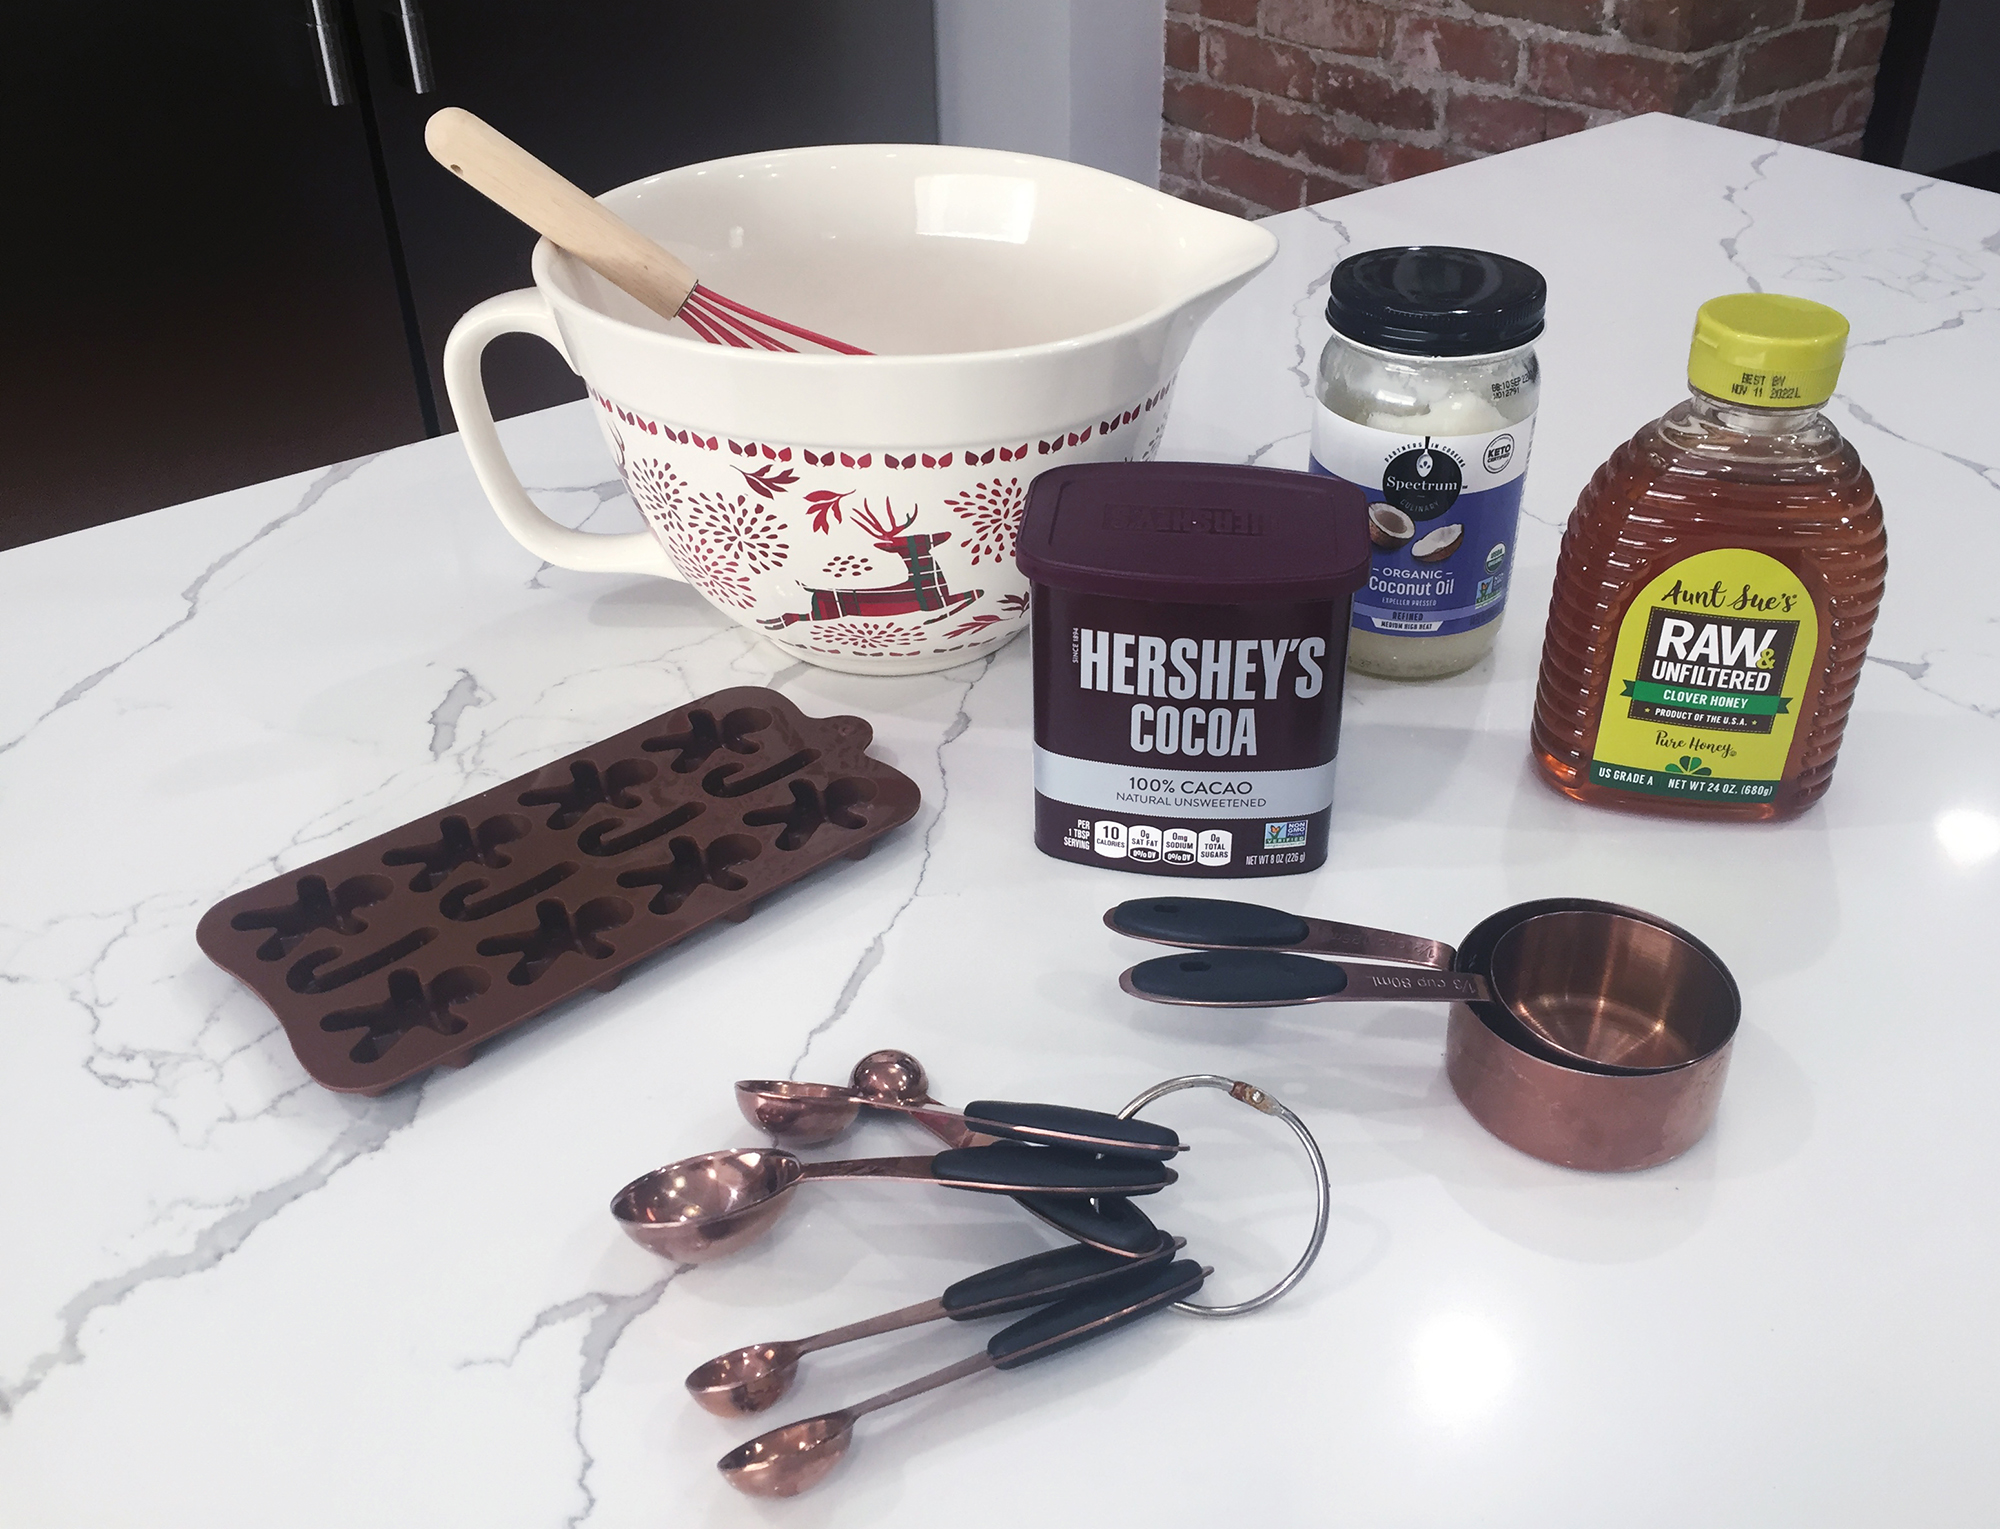 https://discoverycubeconnect.org/wp-content/uploads/2020/11/Gingerbread_Chocolate_Step-1.jpg